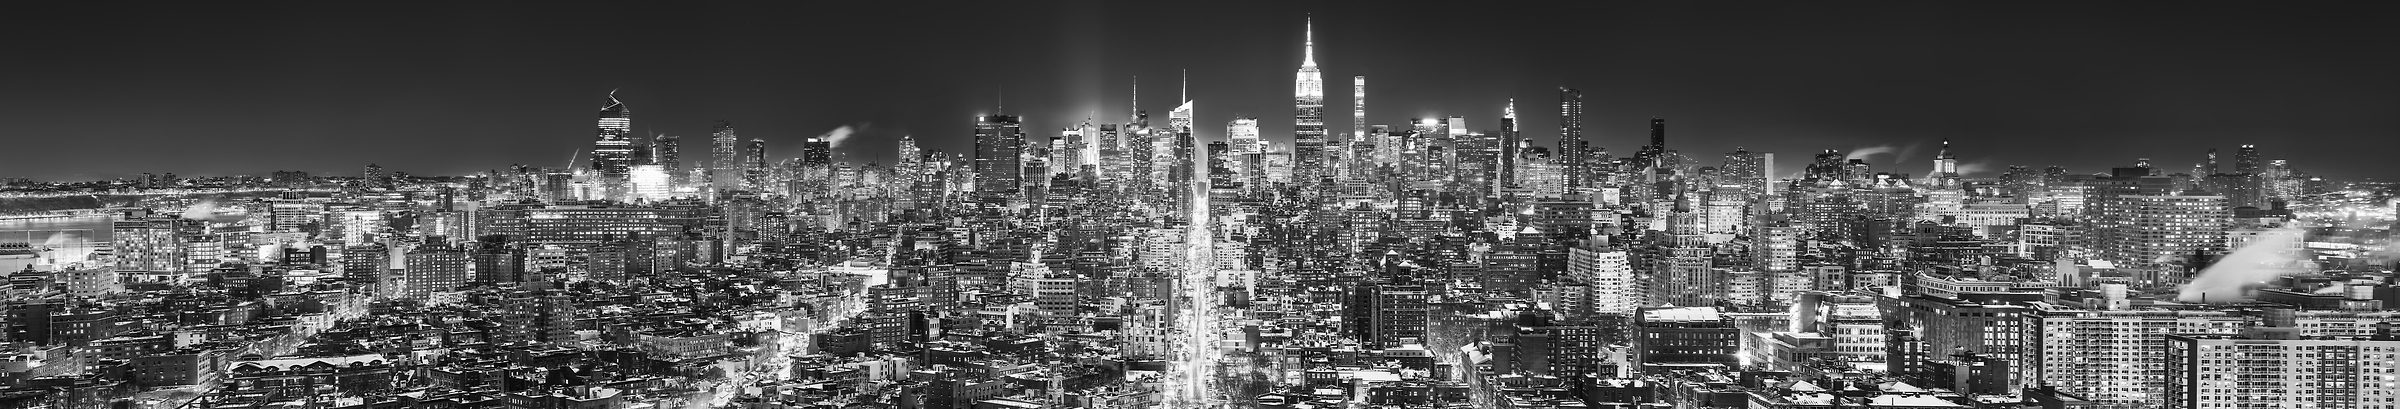 4,636 megapixels! A very high resolution, large-format VAST photo print of the Manhattan NYC skyline in winter snow at night; black and white cityscape fine art photo created by Dan Piech in New York City